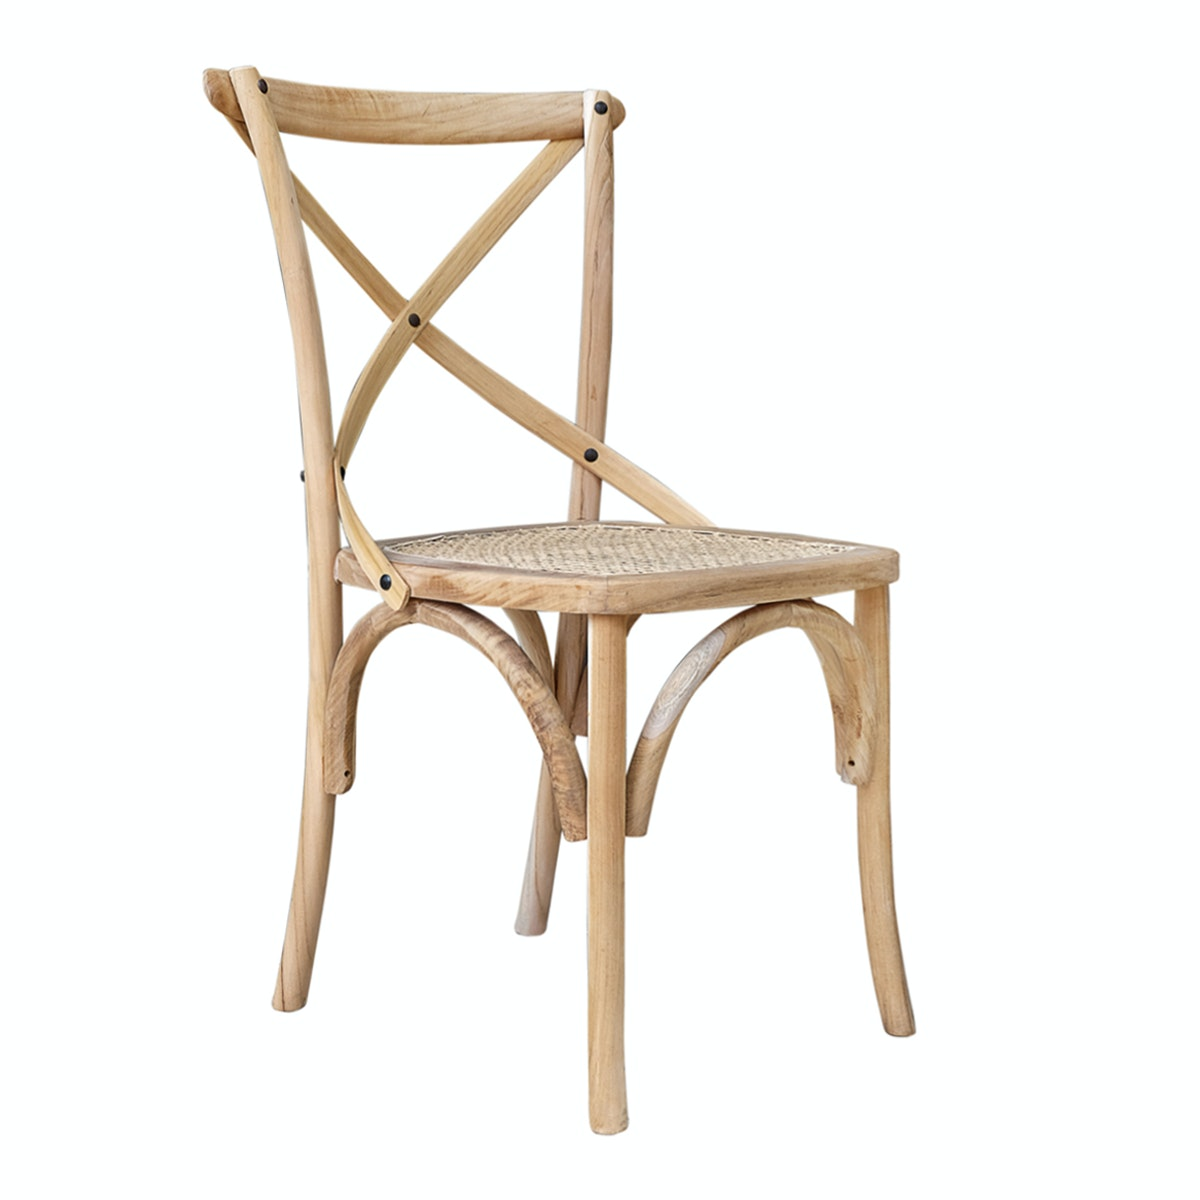 Vie For Living Adana chair